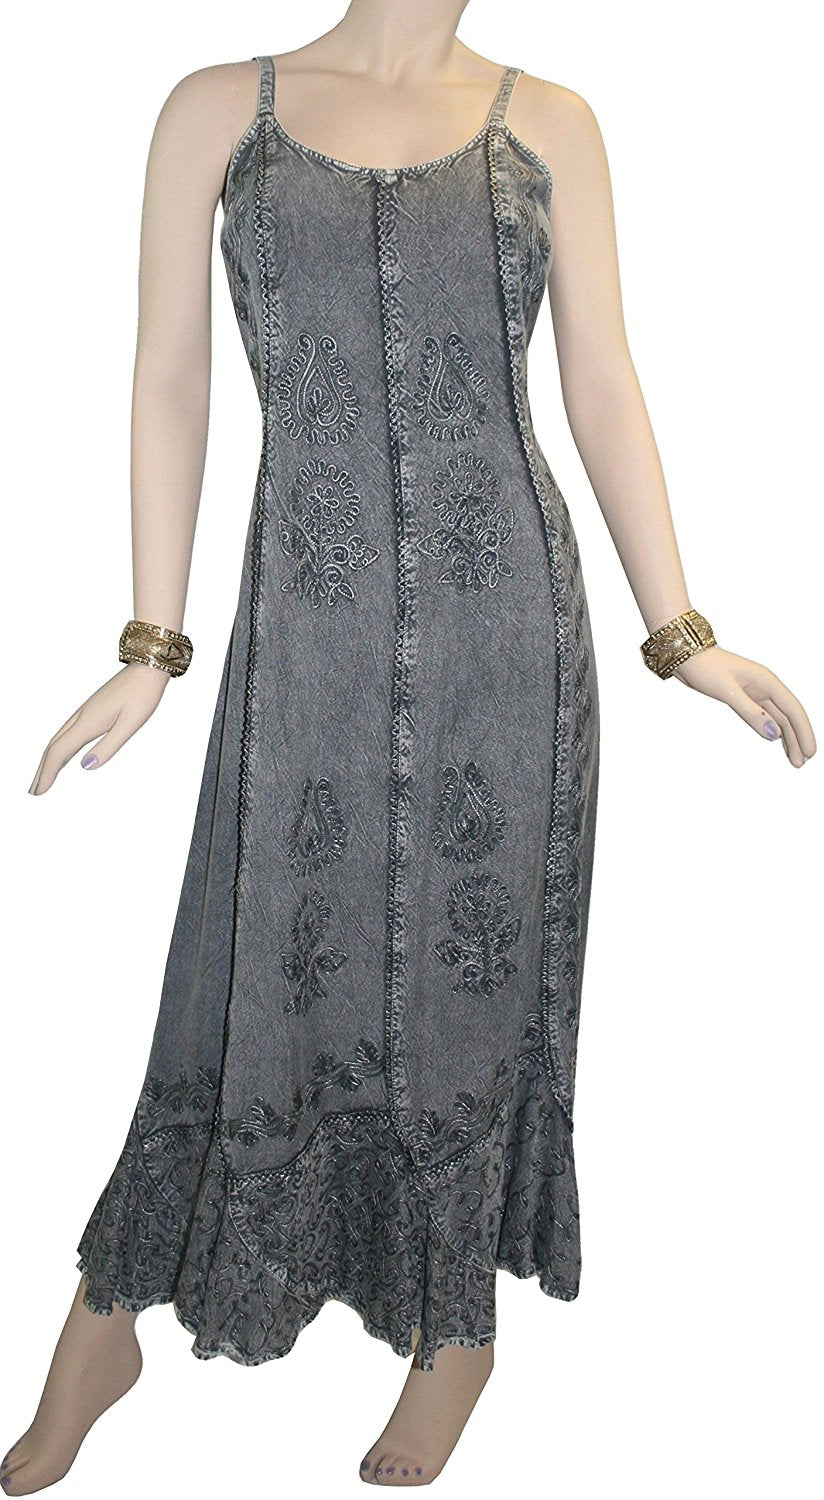 Rayon Embroidered Scalloped Hem Gypsy Spaghetti Strap Dress - Agan Traders, Silver